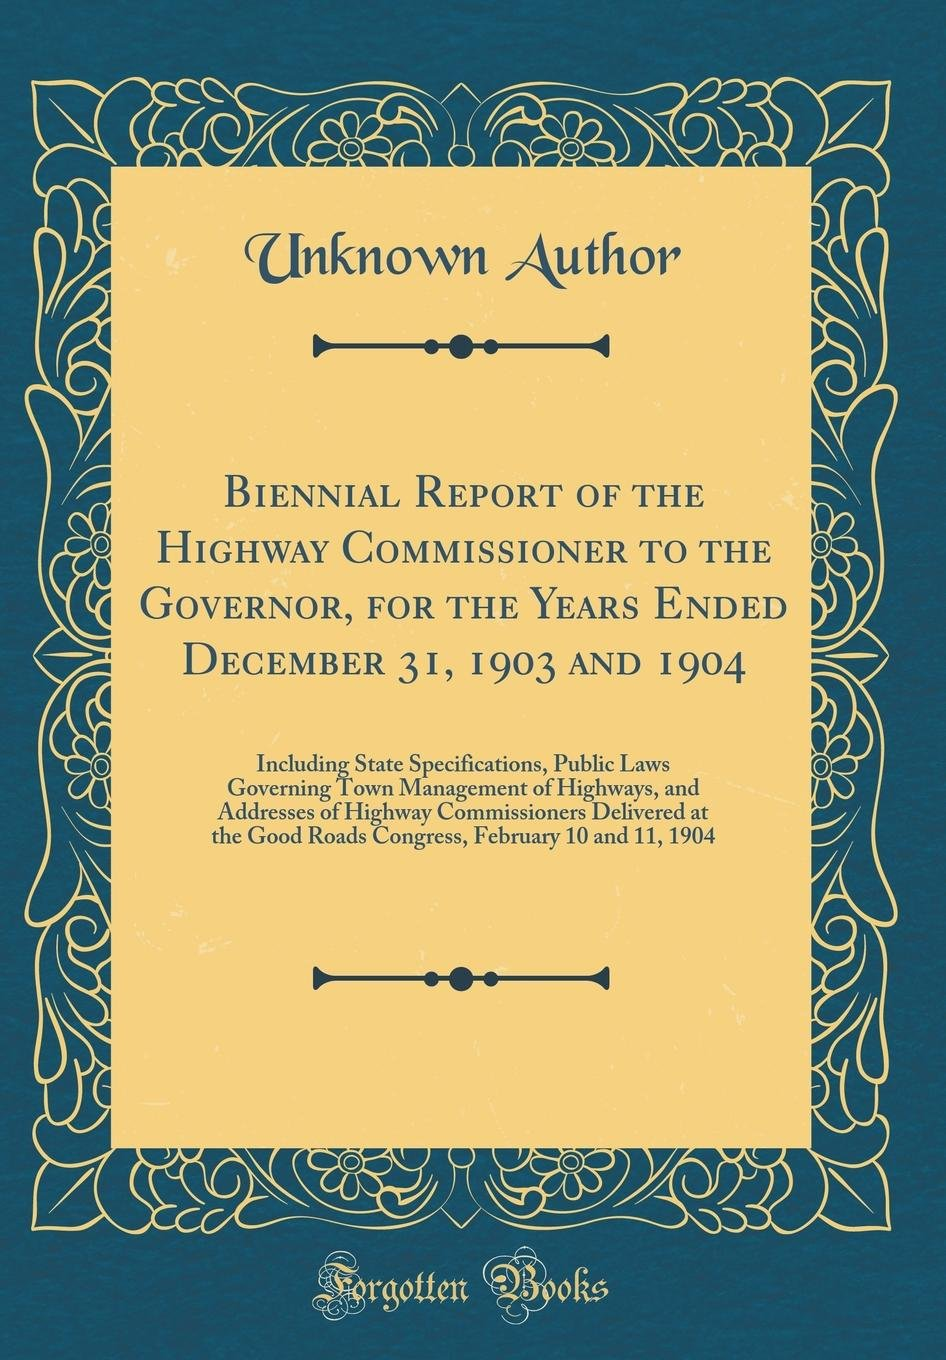 Biennial Report of the Highway Commissioner to the Governor, for the Years Ended December 31, 1903 and 1904: Including State Specifications, Public ... Commissioners Delivered at the Good Ro PDF